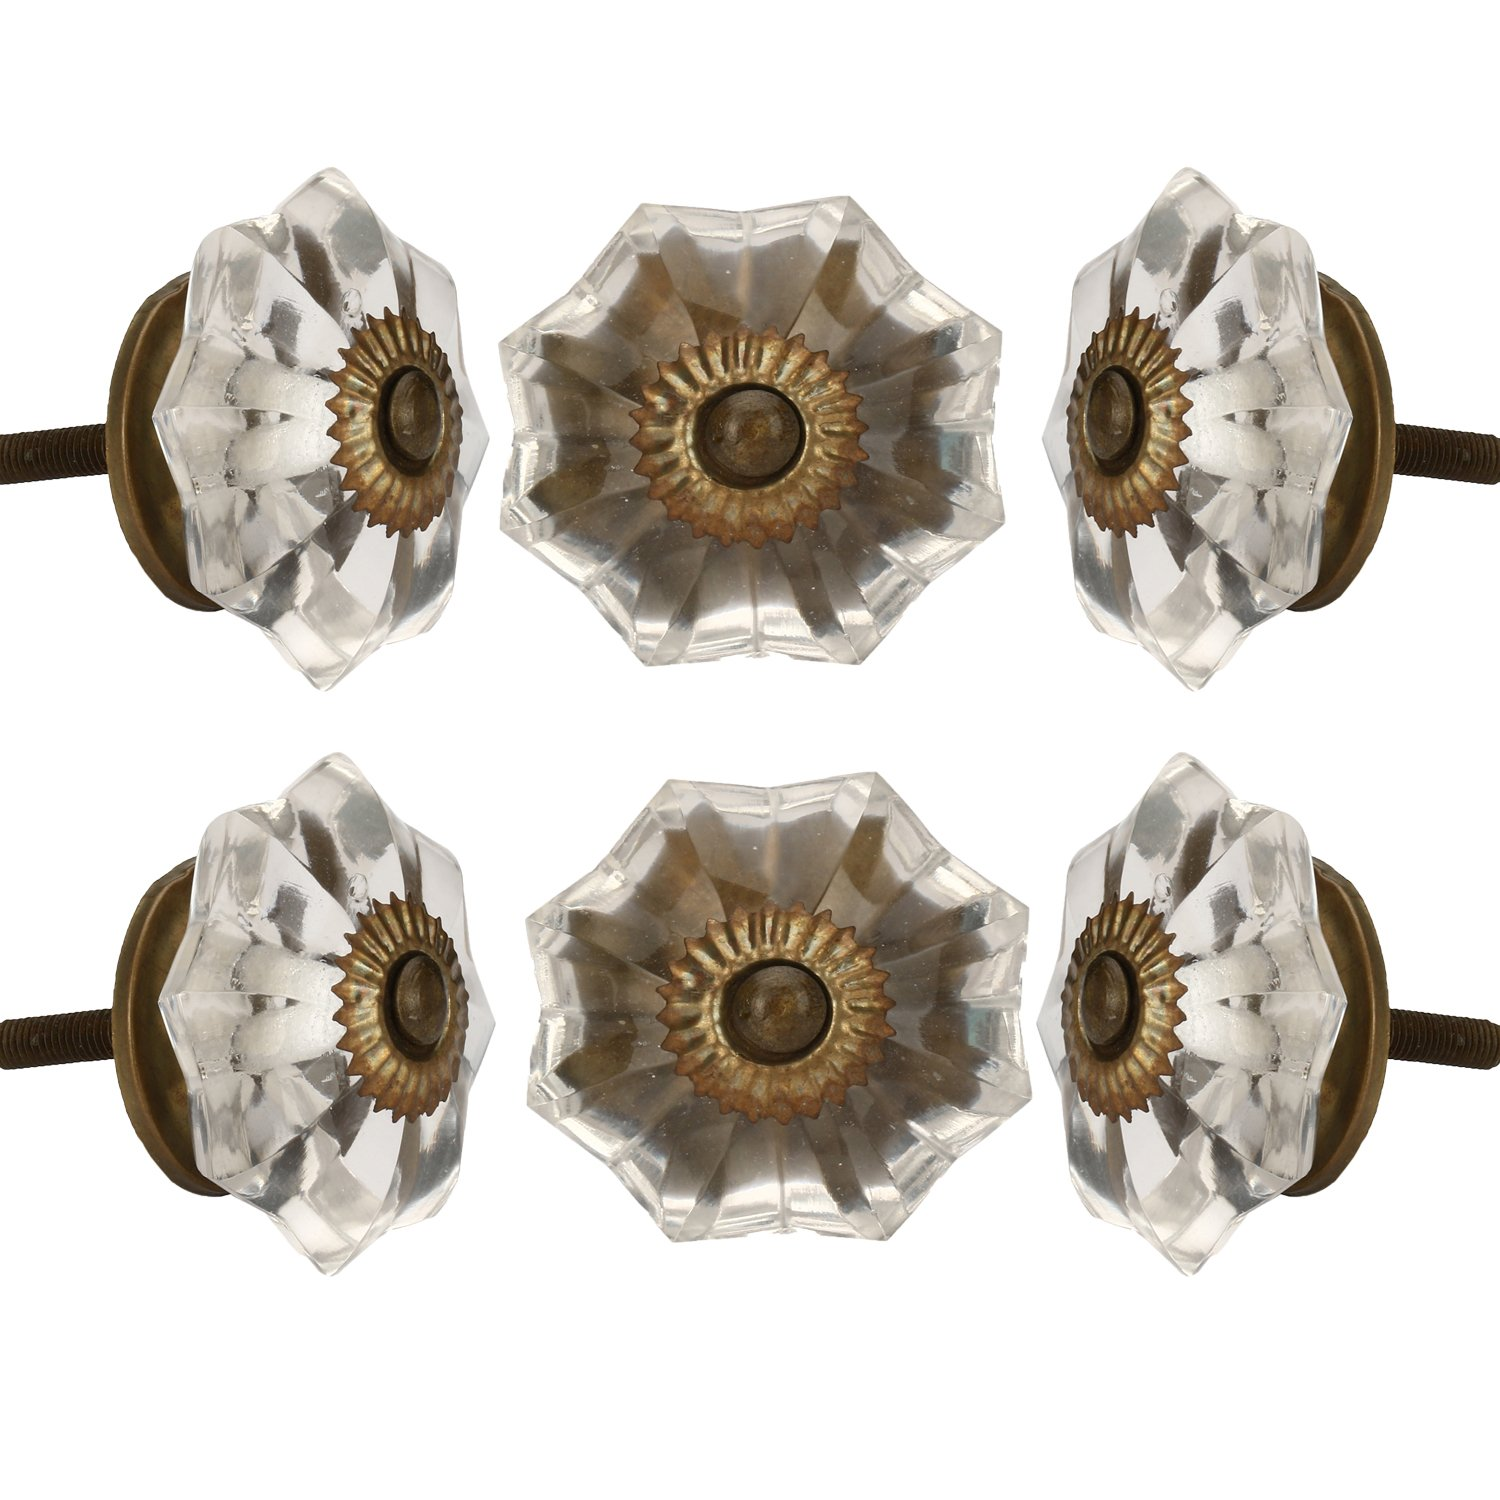 Set of 6 Crystal Glass Knobs Kitchen Cabinet Cupboard Glass Door Knobs Dresser Wardrobe and Drawer Pull by Perilla Home (Clear)